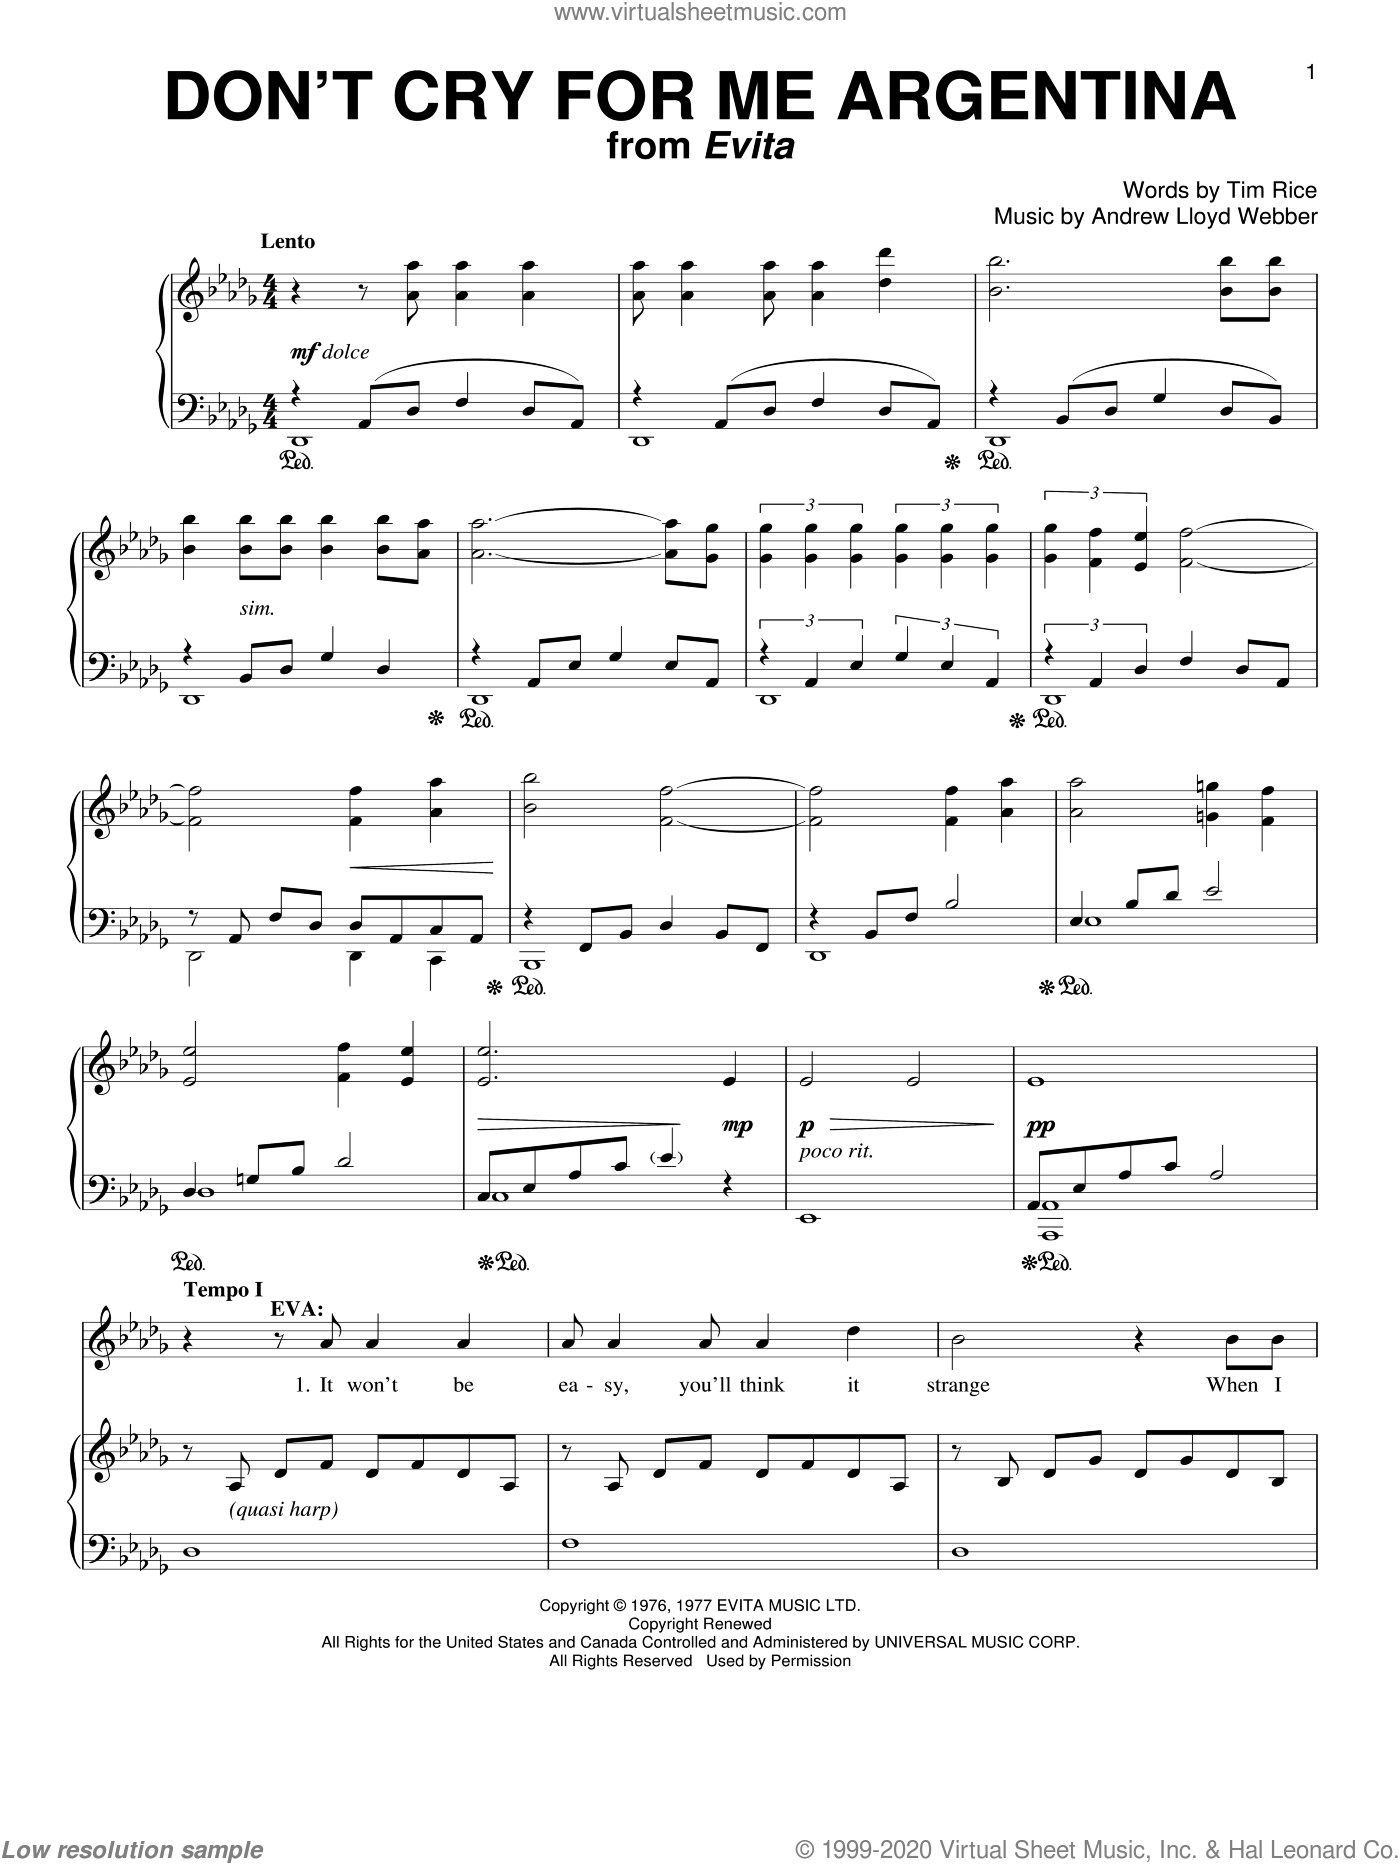 Don't Cry For Me Argentina sheet music for voice and piano by Tim Rice